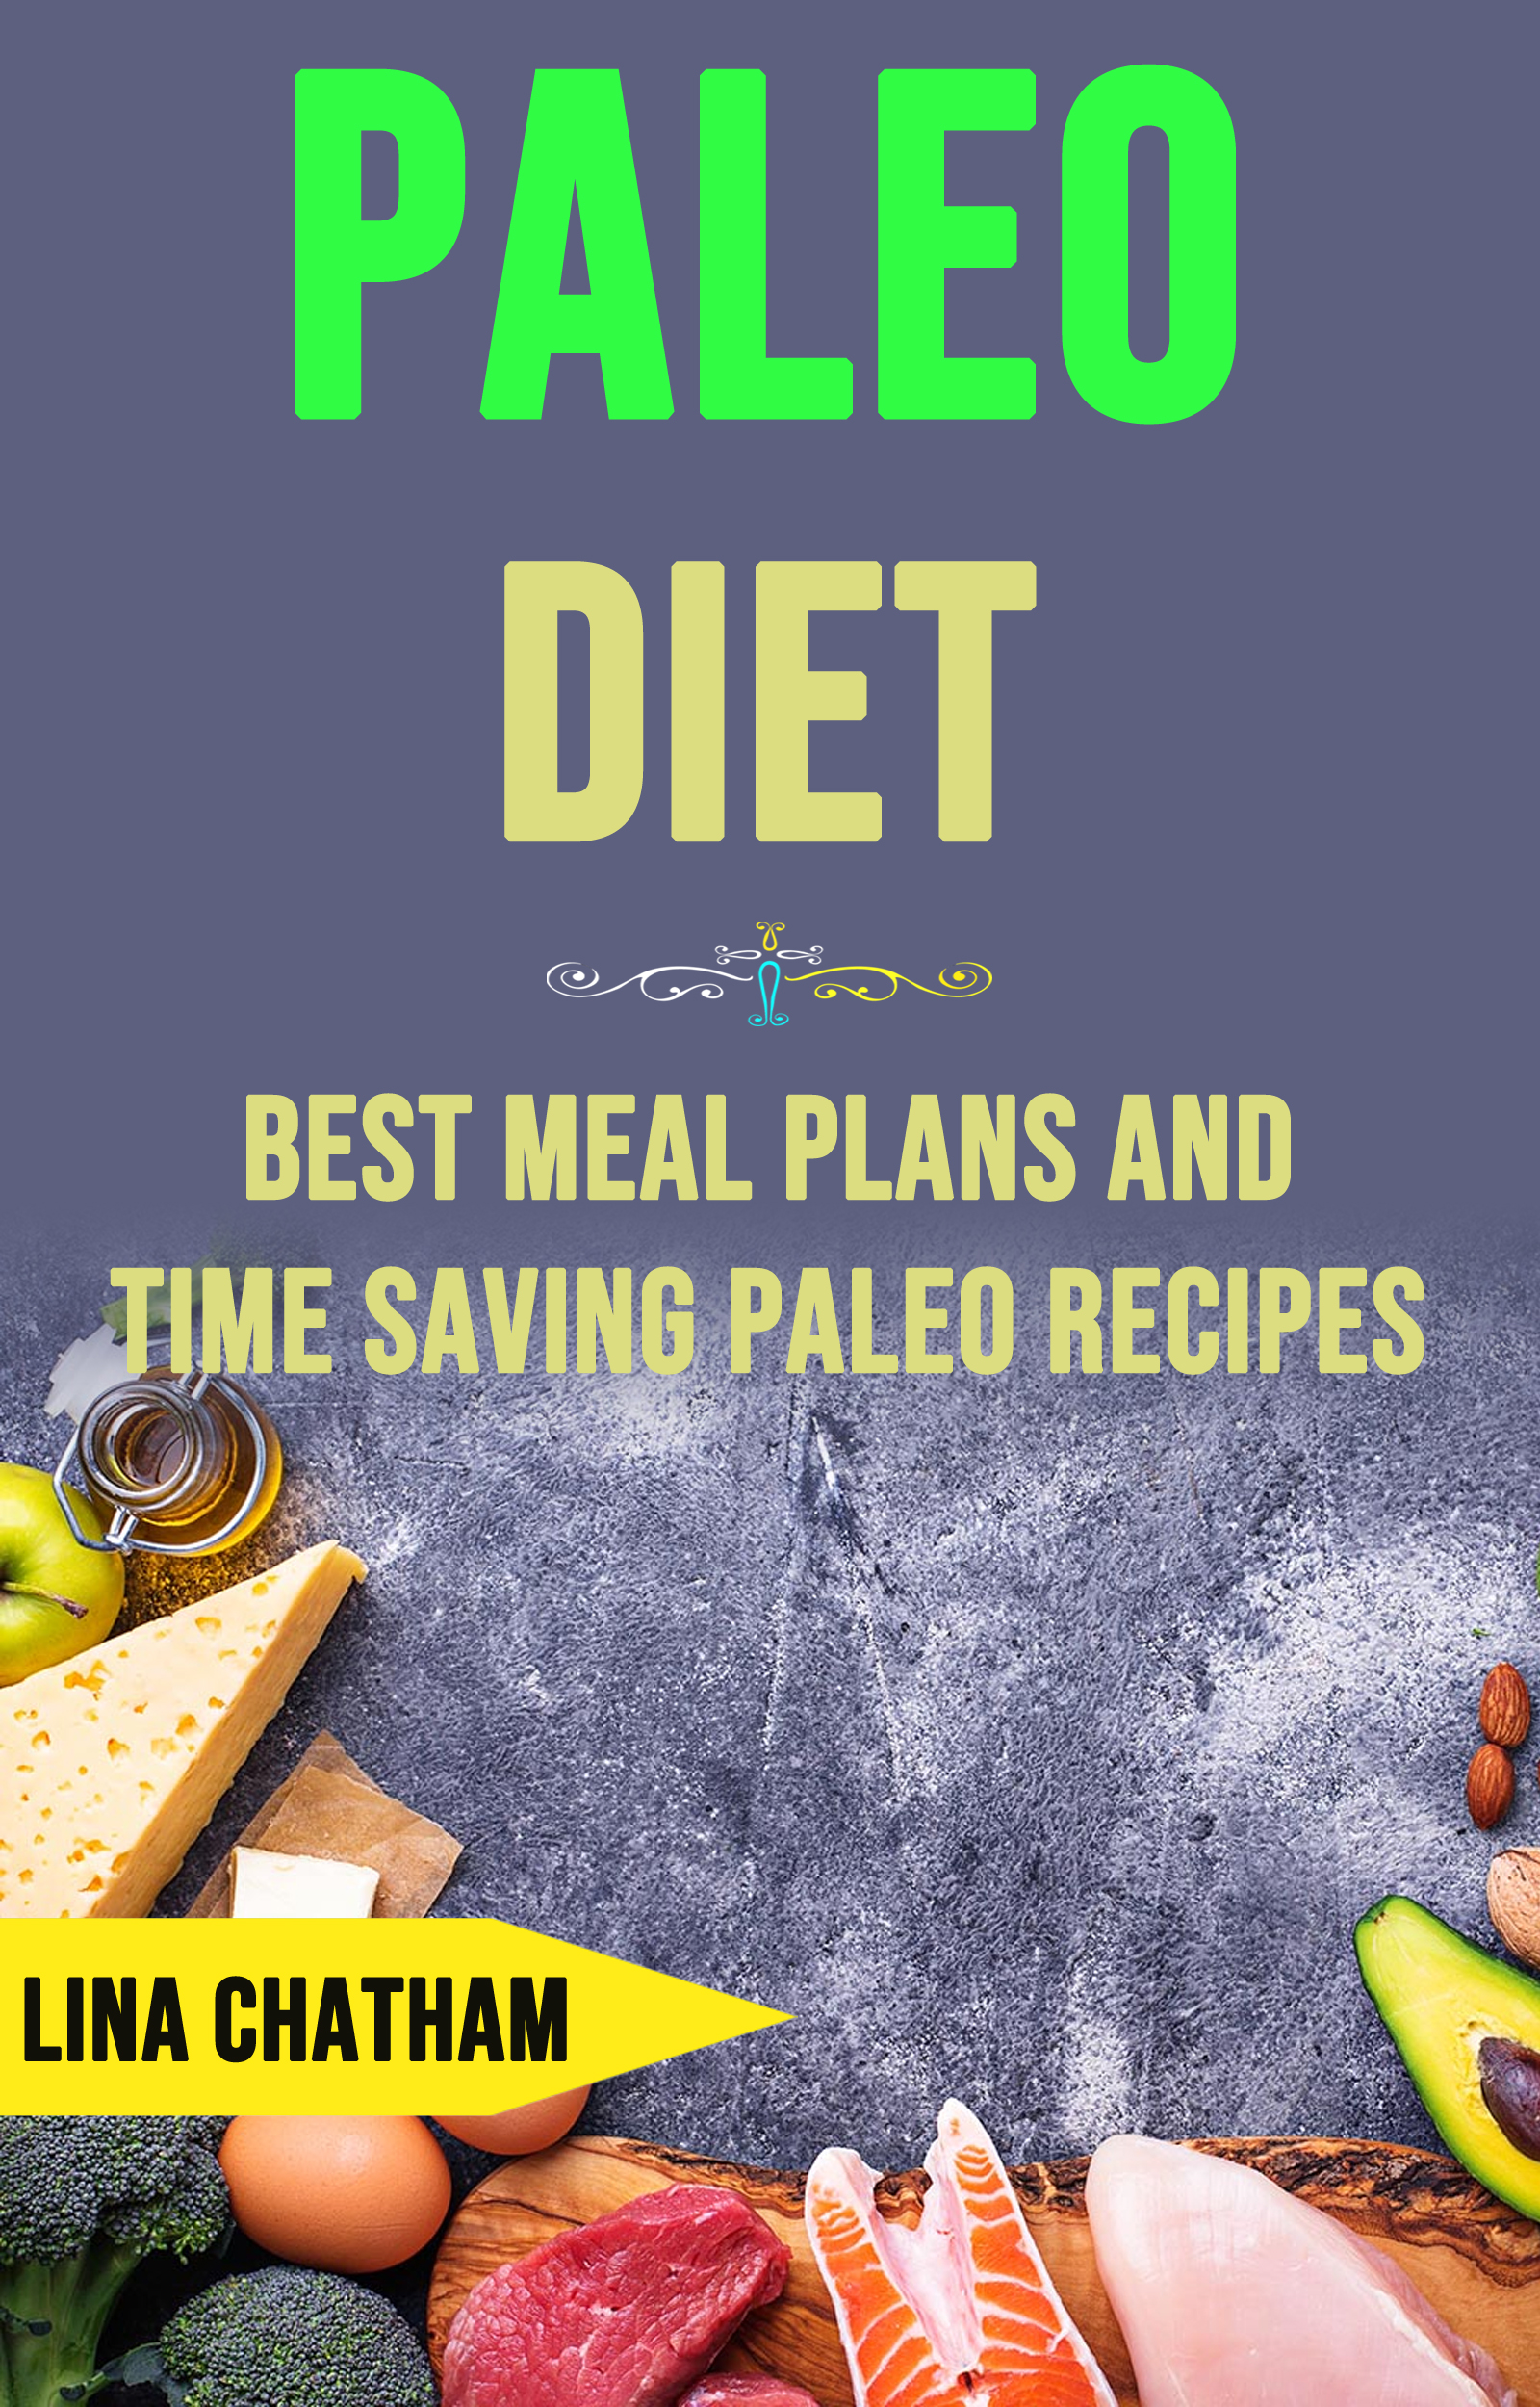 Paleo diet: best meal plans and time saving paleo recipes